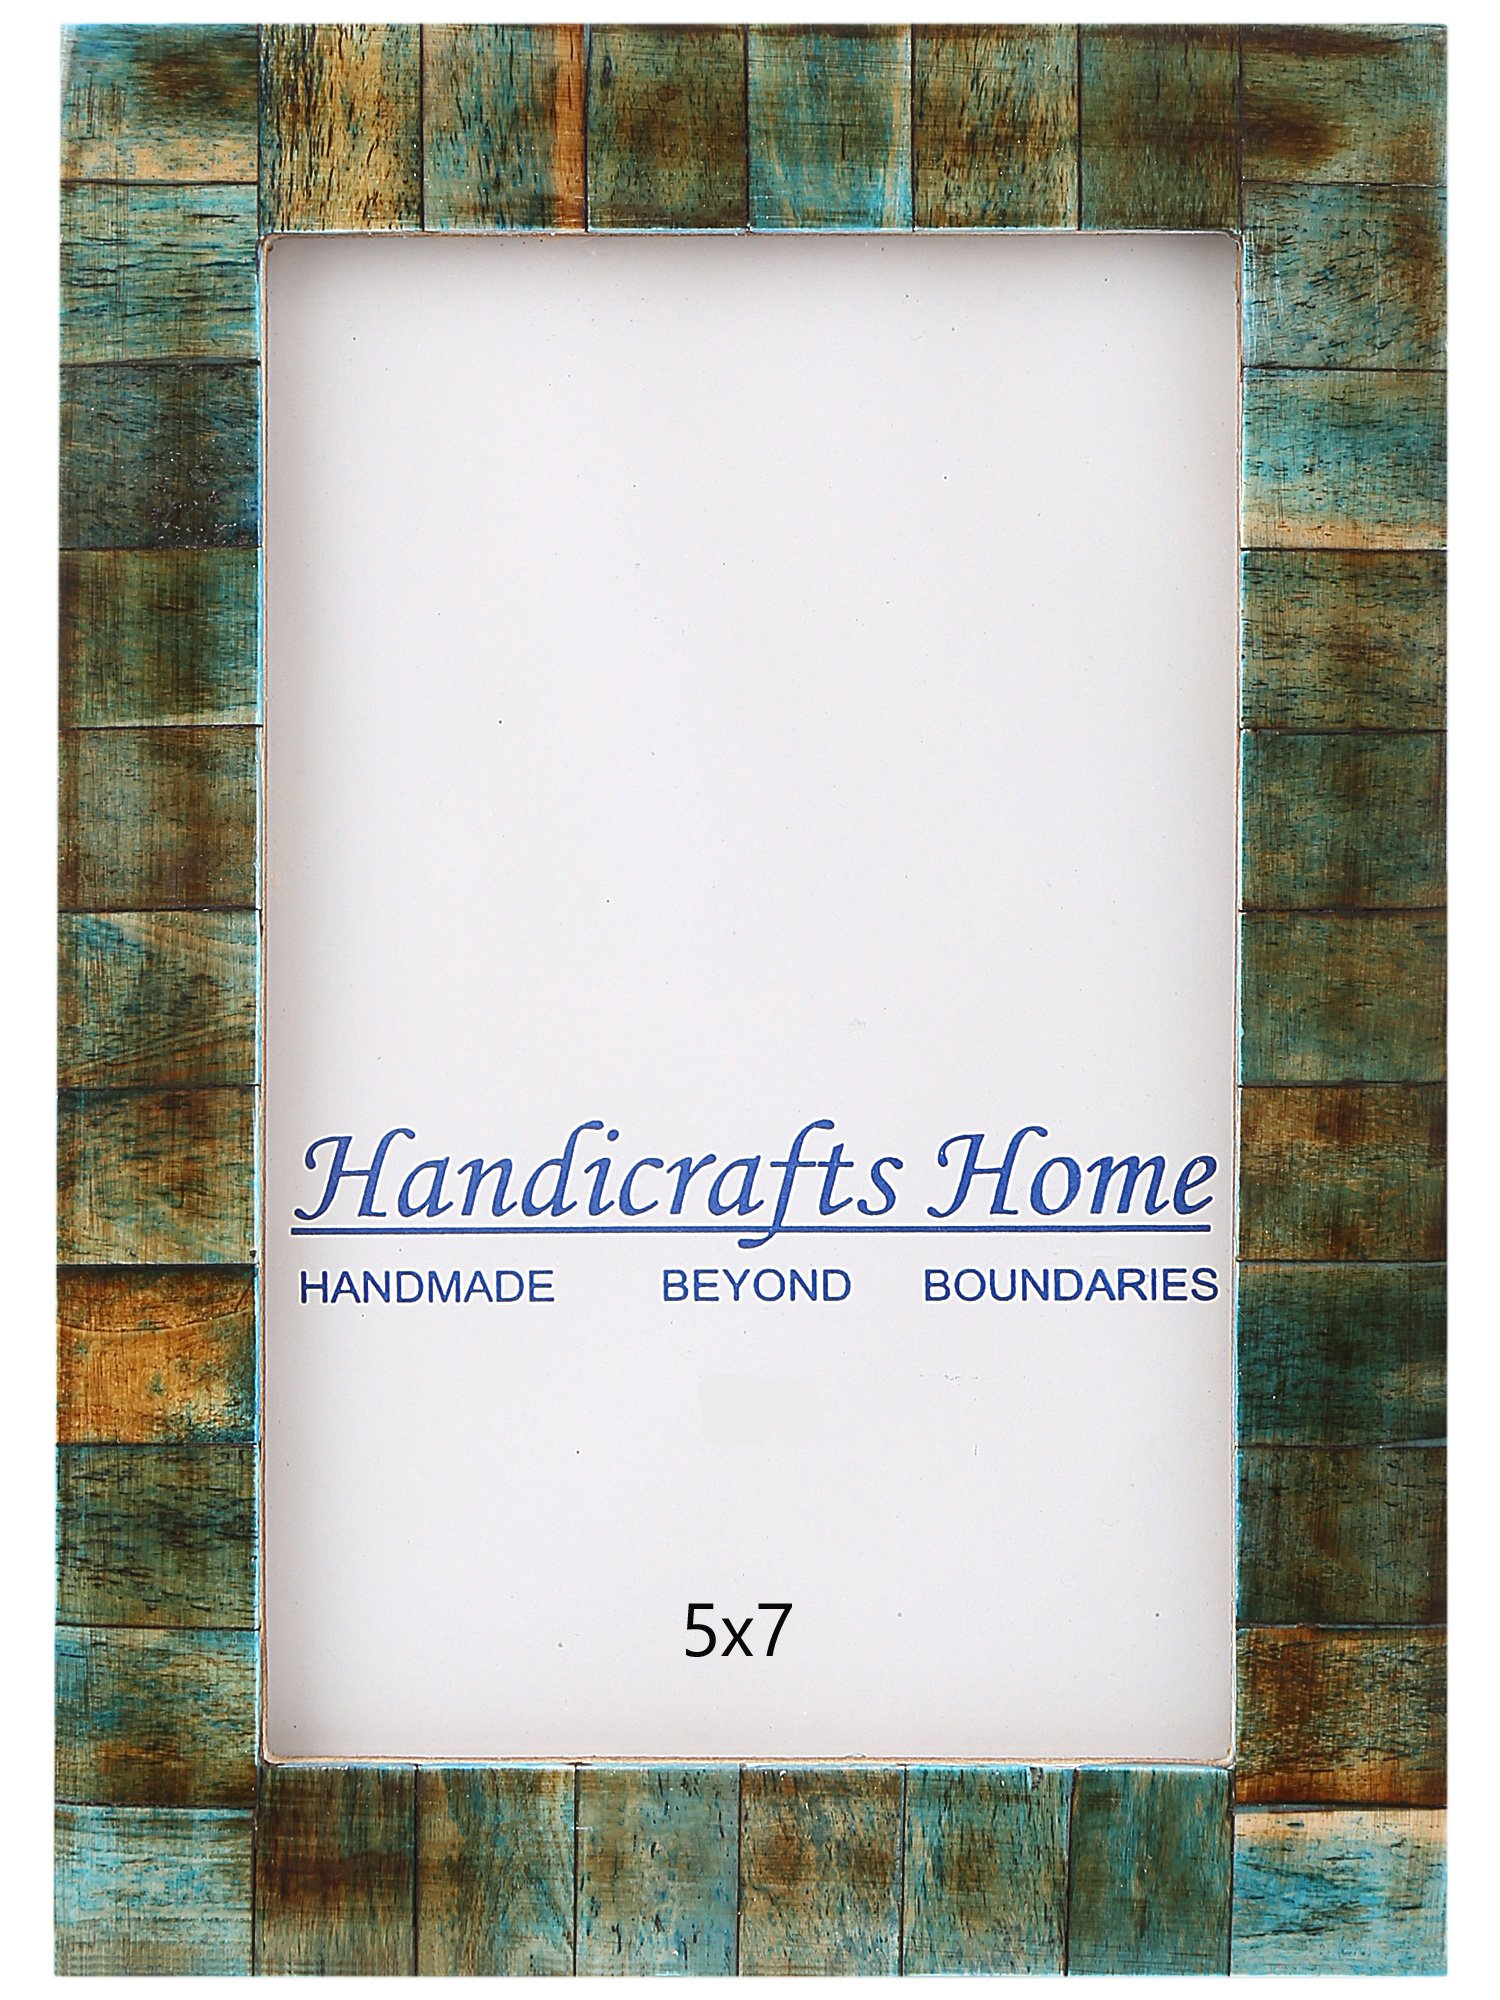 Handicrafts Home 5x7 Verdigris Bone Picture Frames Chic Photo Frame Handmade Vintage from by Handicrafts Home